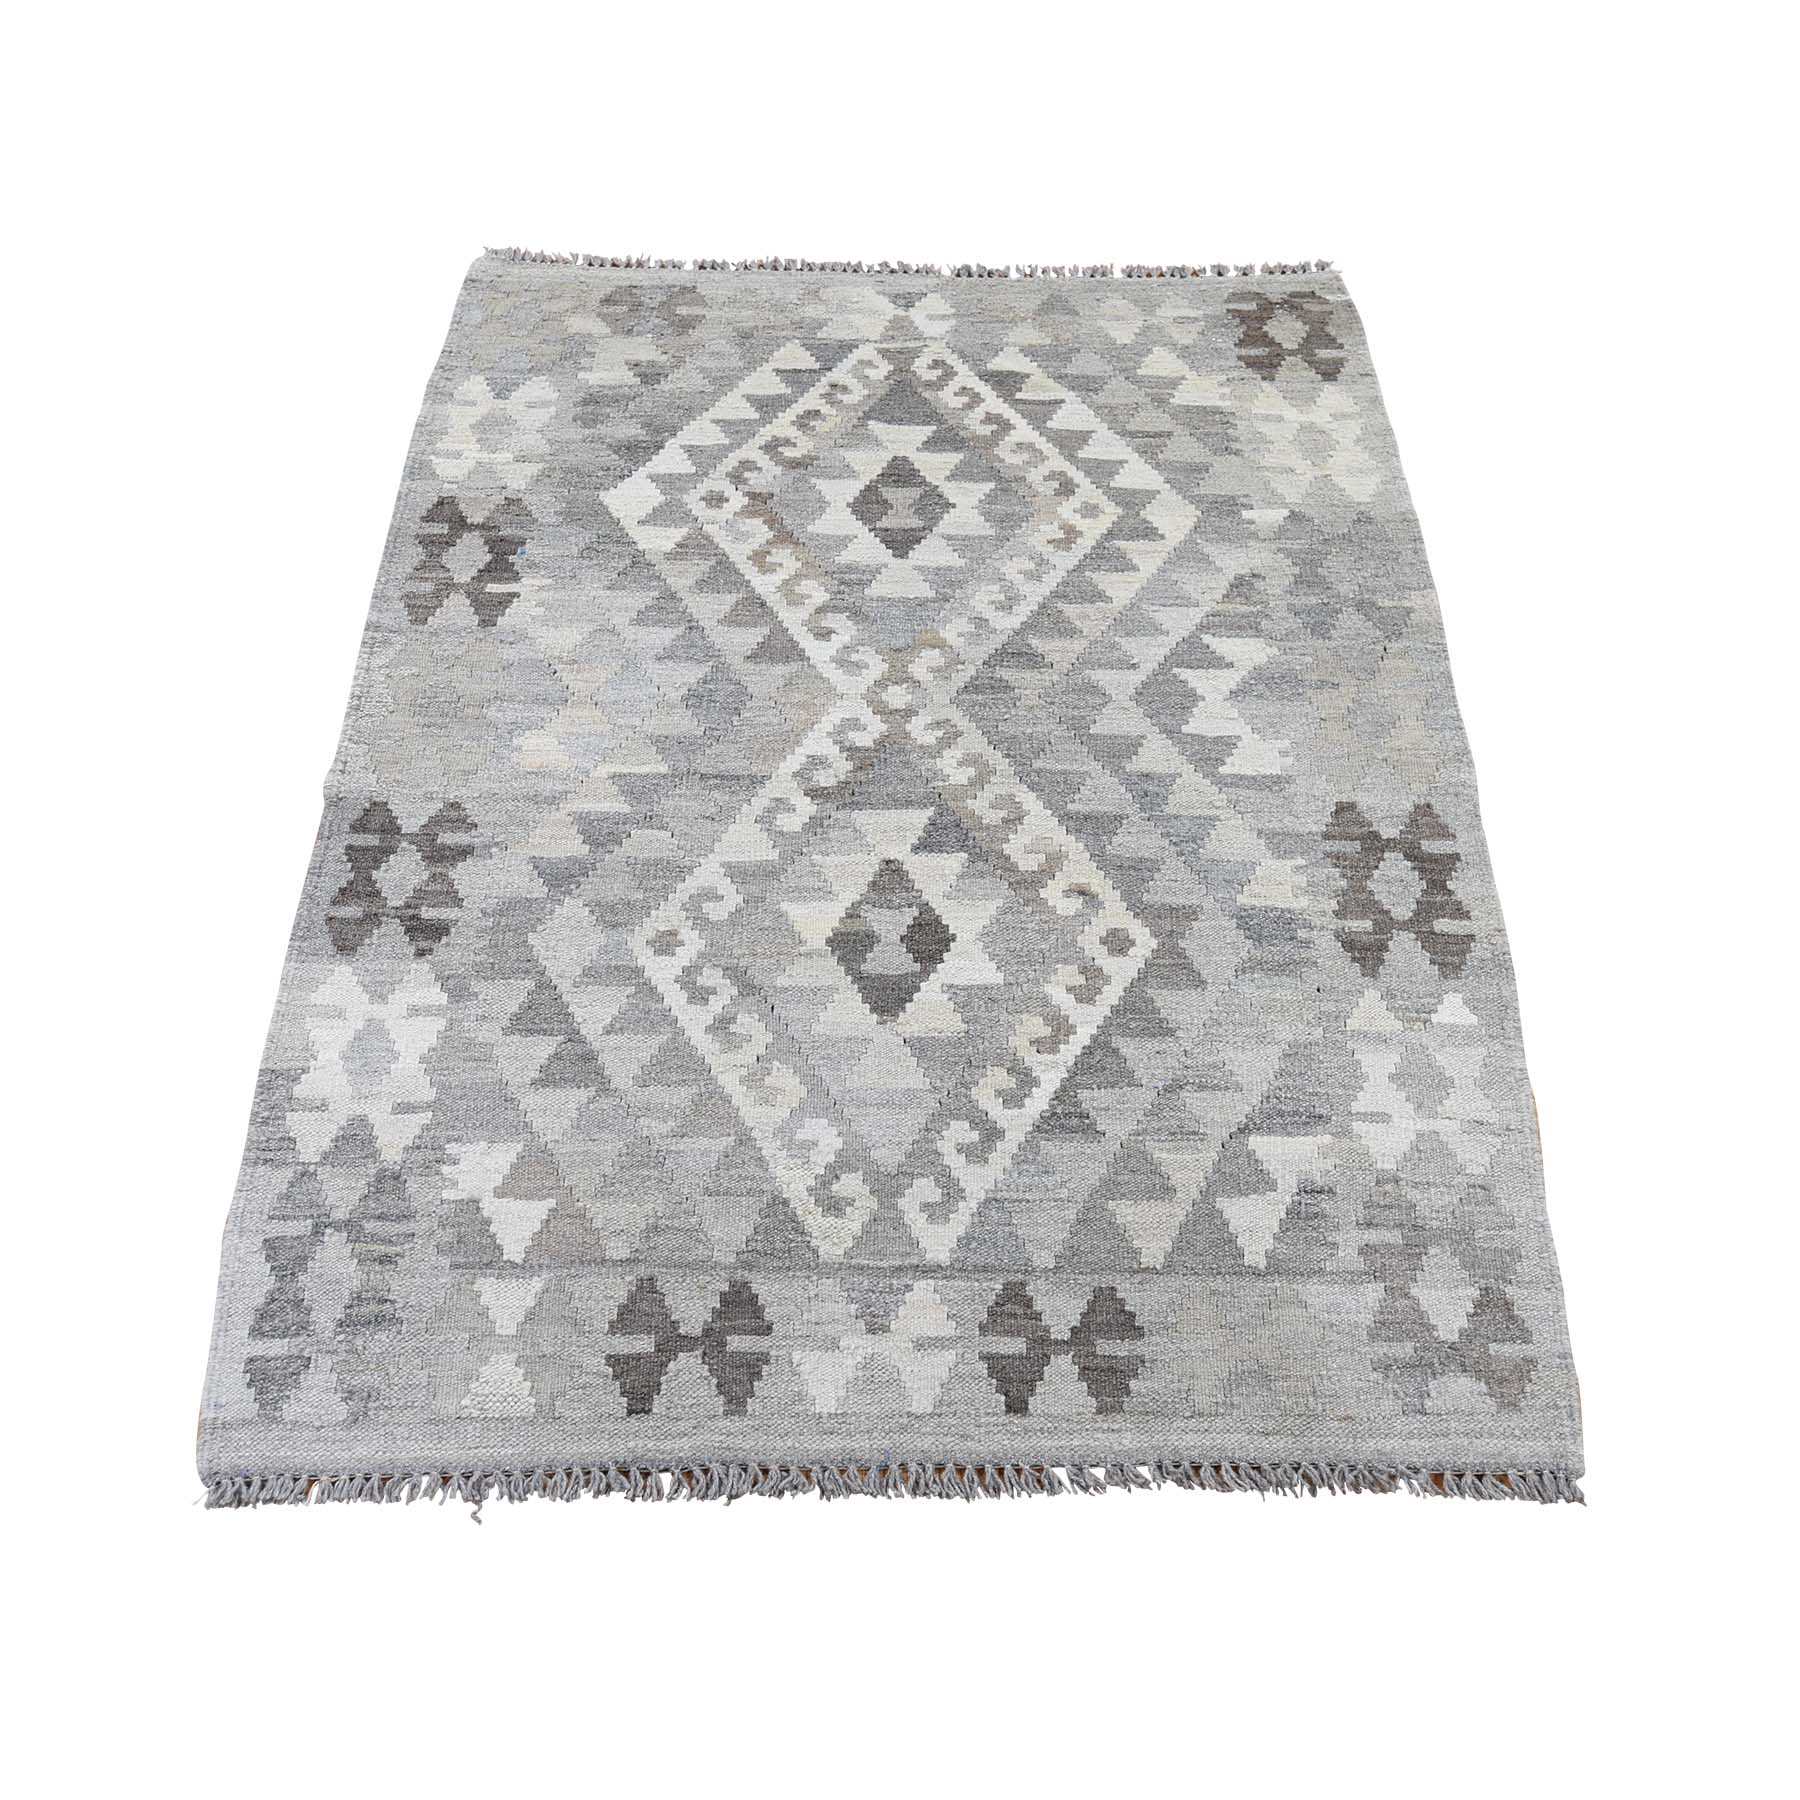 """3'x4'2"""" Afghan Kilim Reversible Undyed Natural Wool Hand Woven Oriental Rug"""